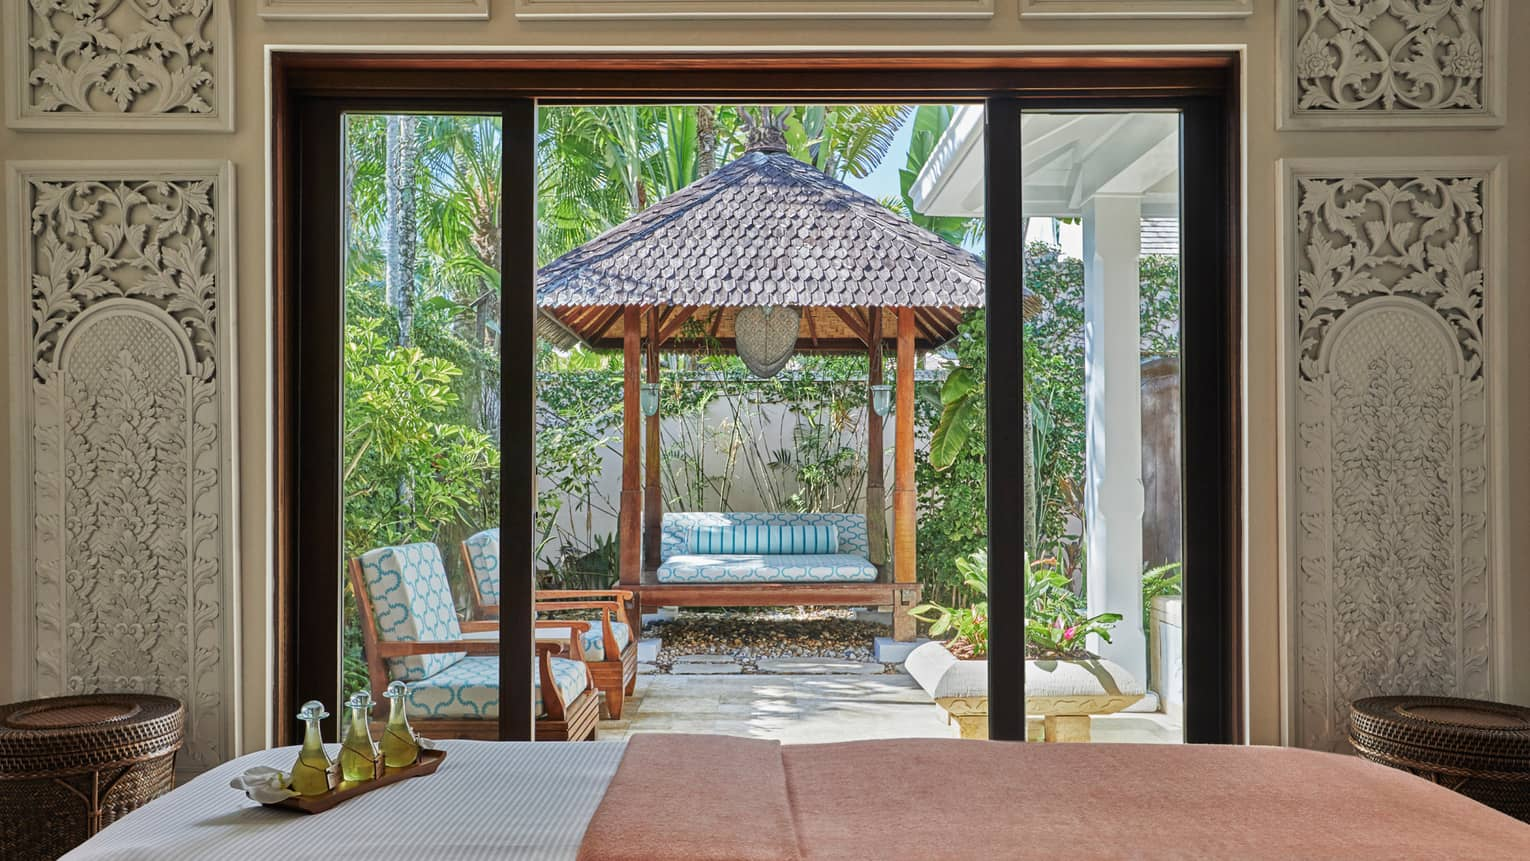 Bali-inspired spa treatment bed by open door to patio lounge